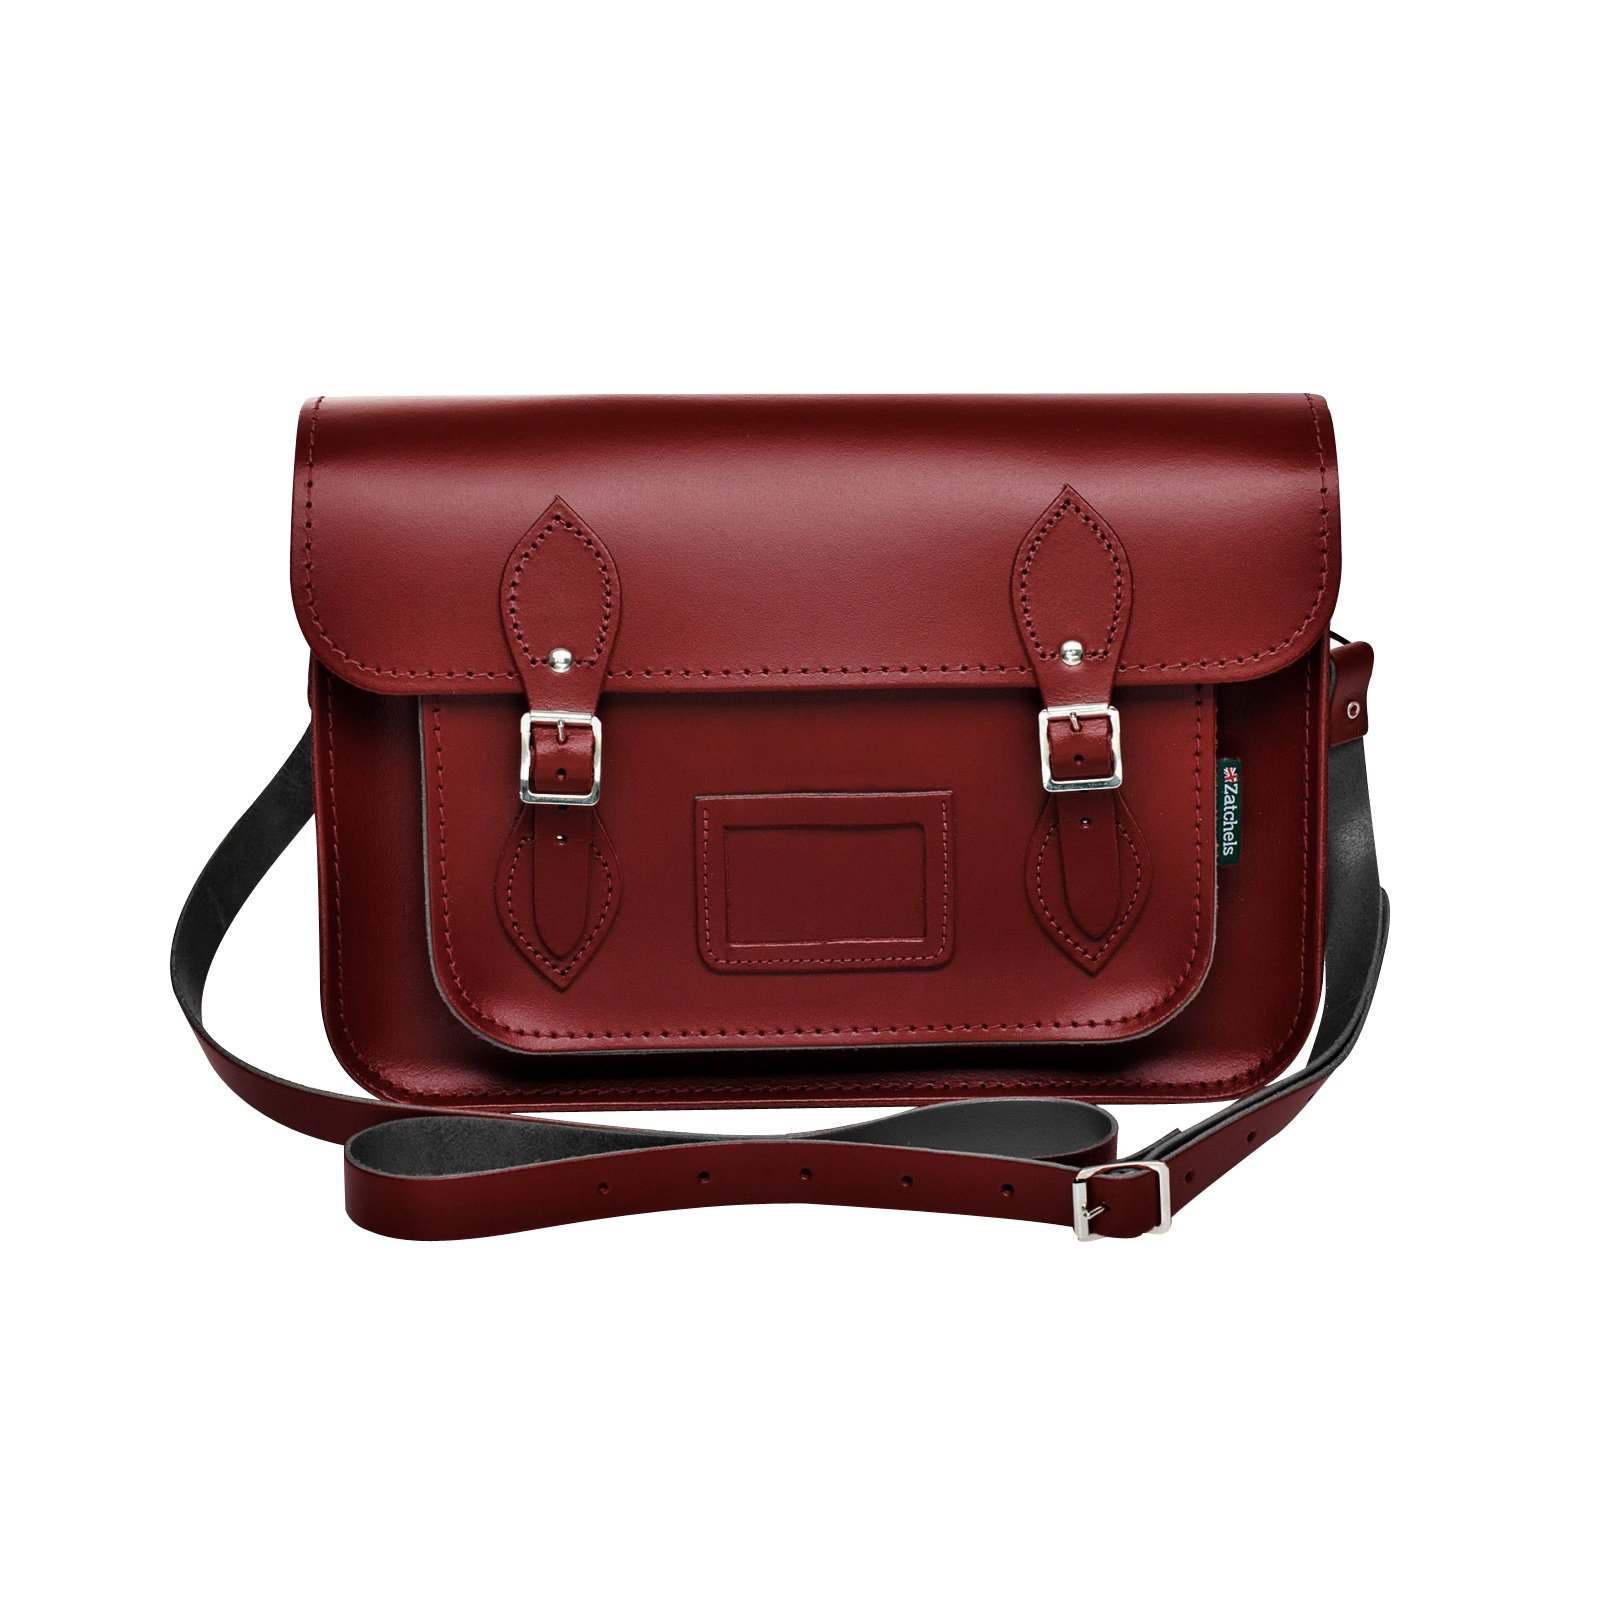 Zatchels Womens/Ladies Handcrafted Leather Satchel Bag (British Made) (16in) (Oxblood Red)